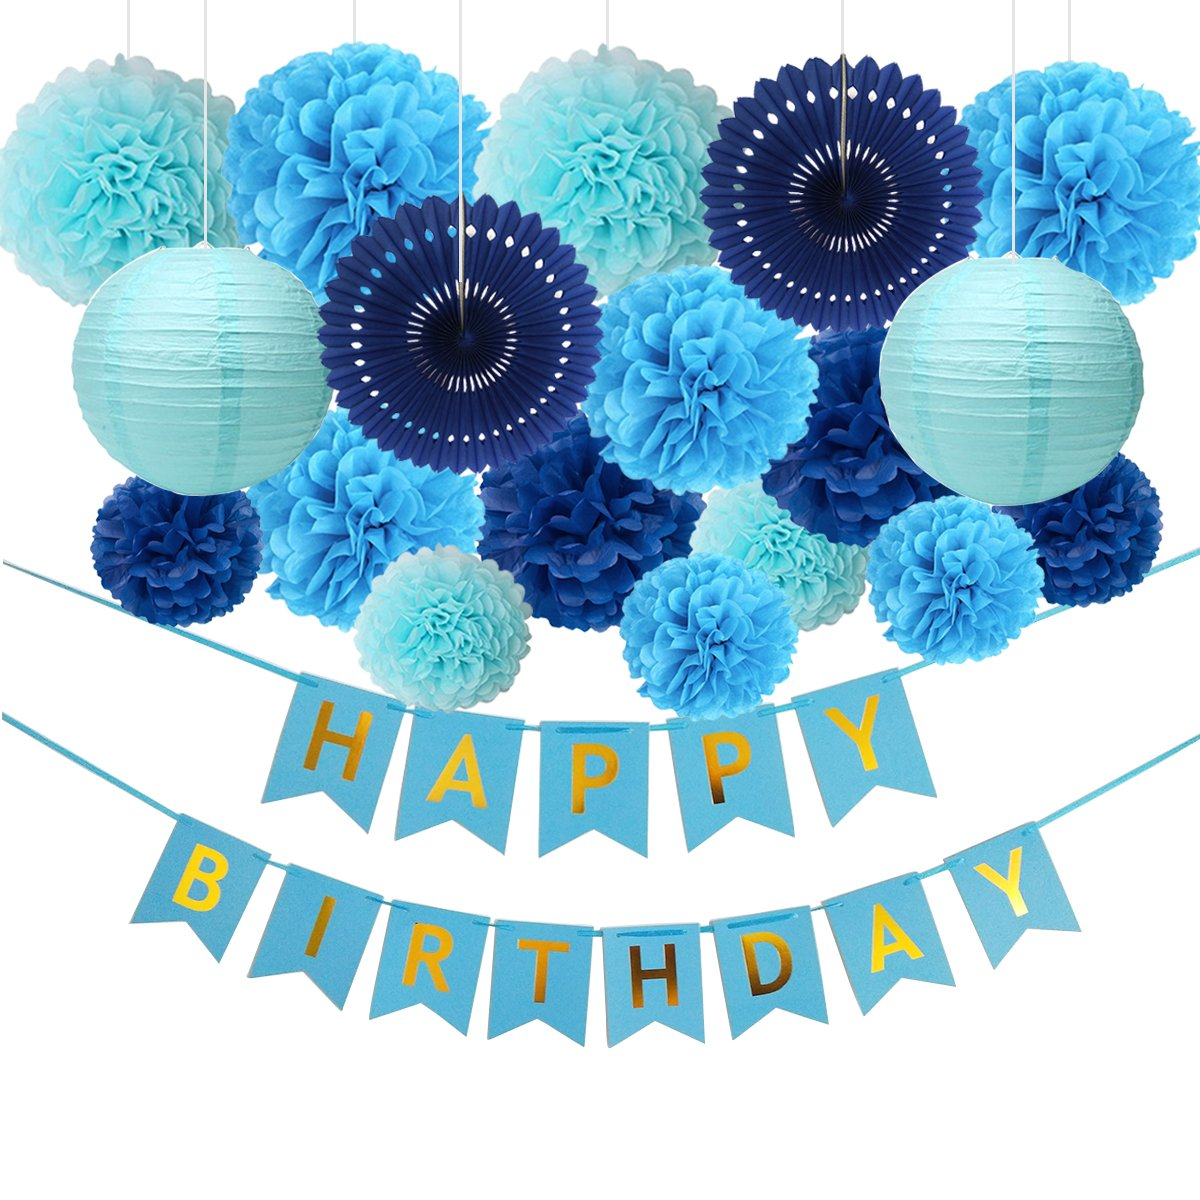 Blue Birthday Party Decorations, Happy Birthday Banner, 14 Paper Pom Poms, 2 Paper Lanterns, 2 Paper Fans - Men Girls Kids, Baby Shower, Boys' 1st Birthday Party Supplies